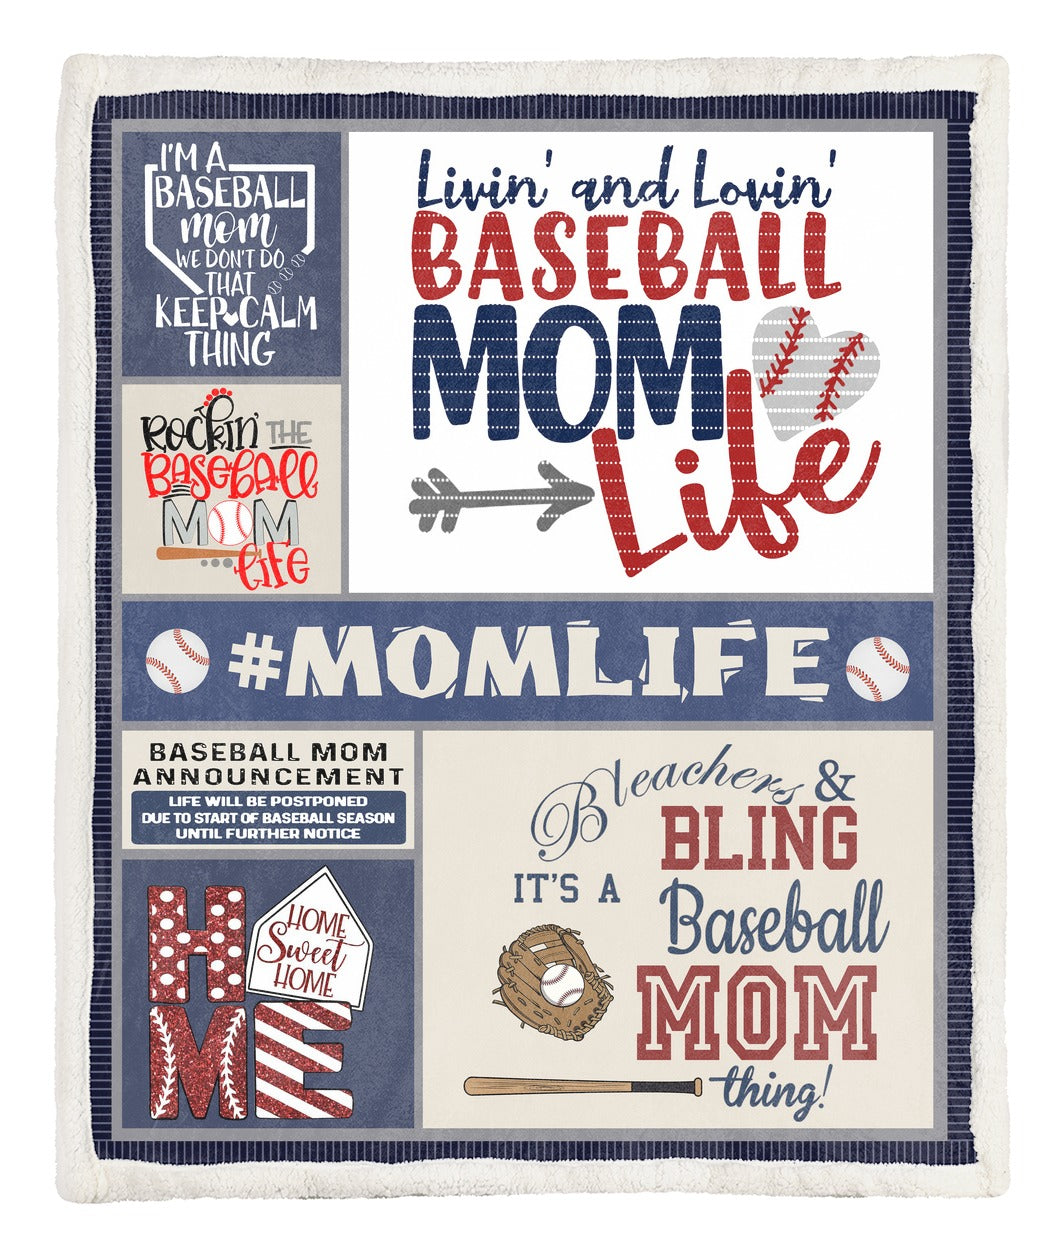 mom-s-life-throw-blanket-tabccc19101531